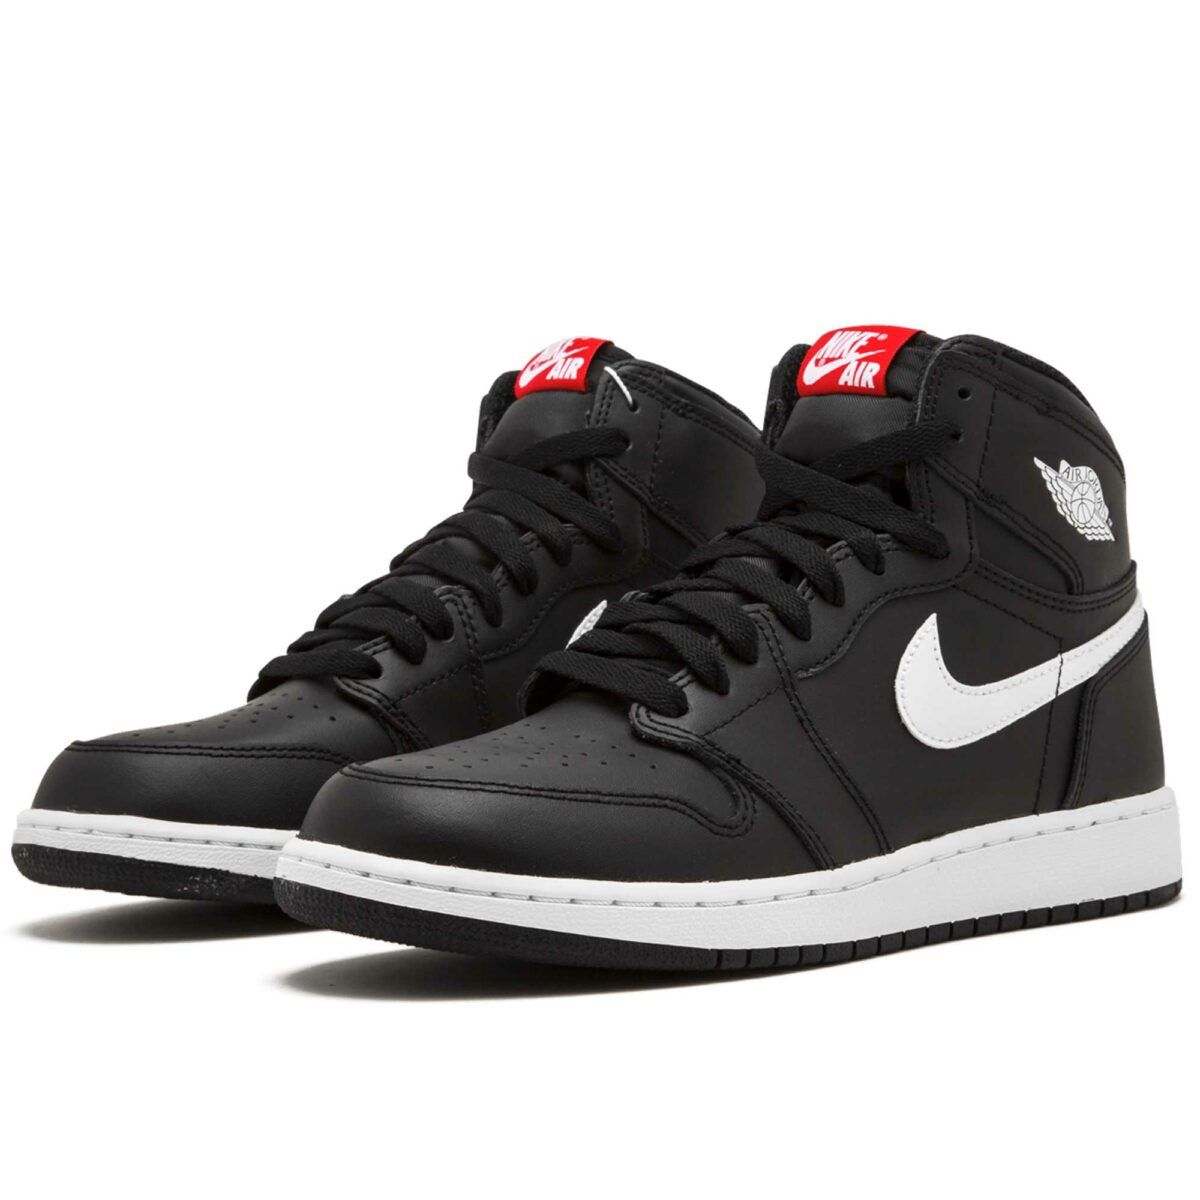 nike air Jordan 1 retro high og bg black white 575441_011 купить